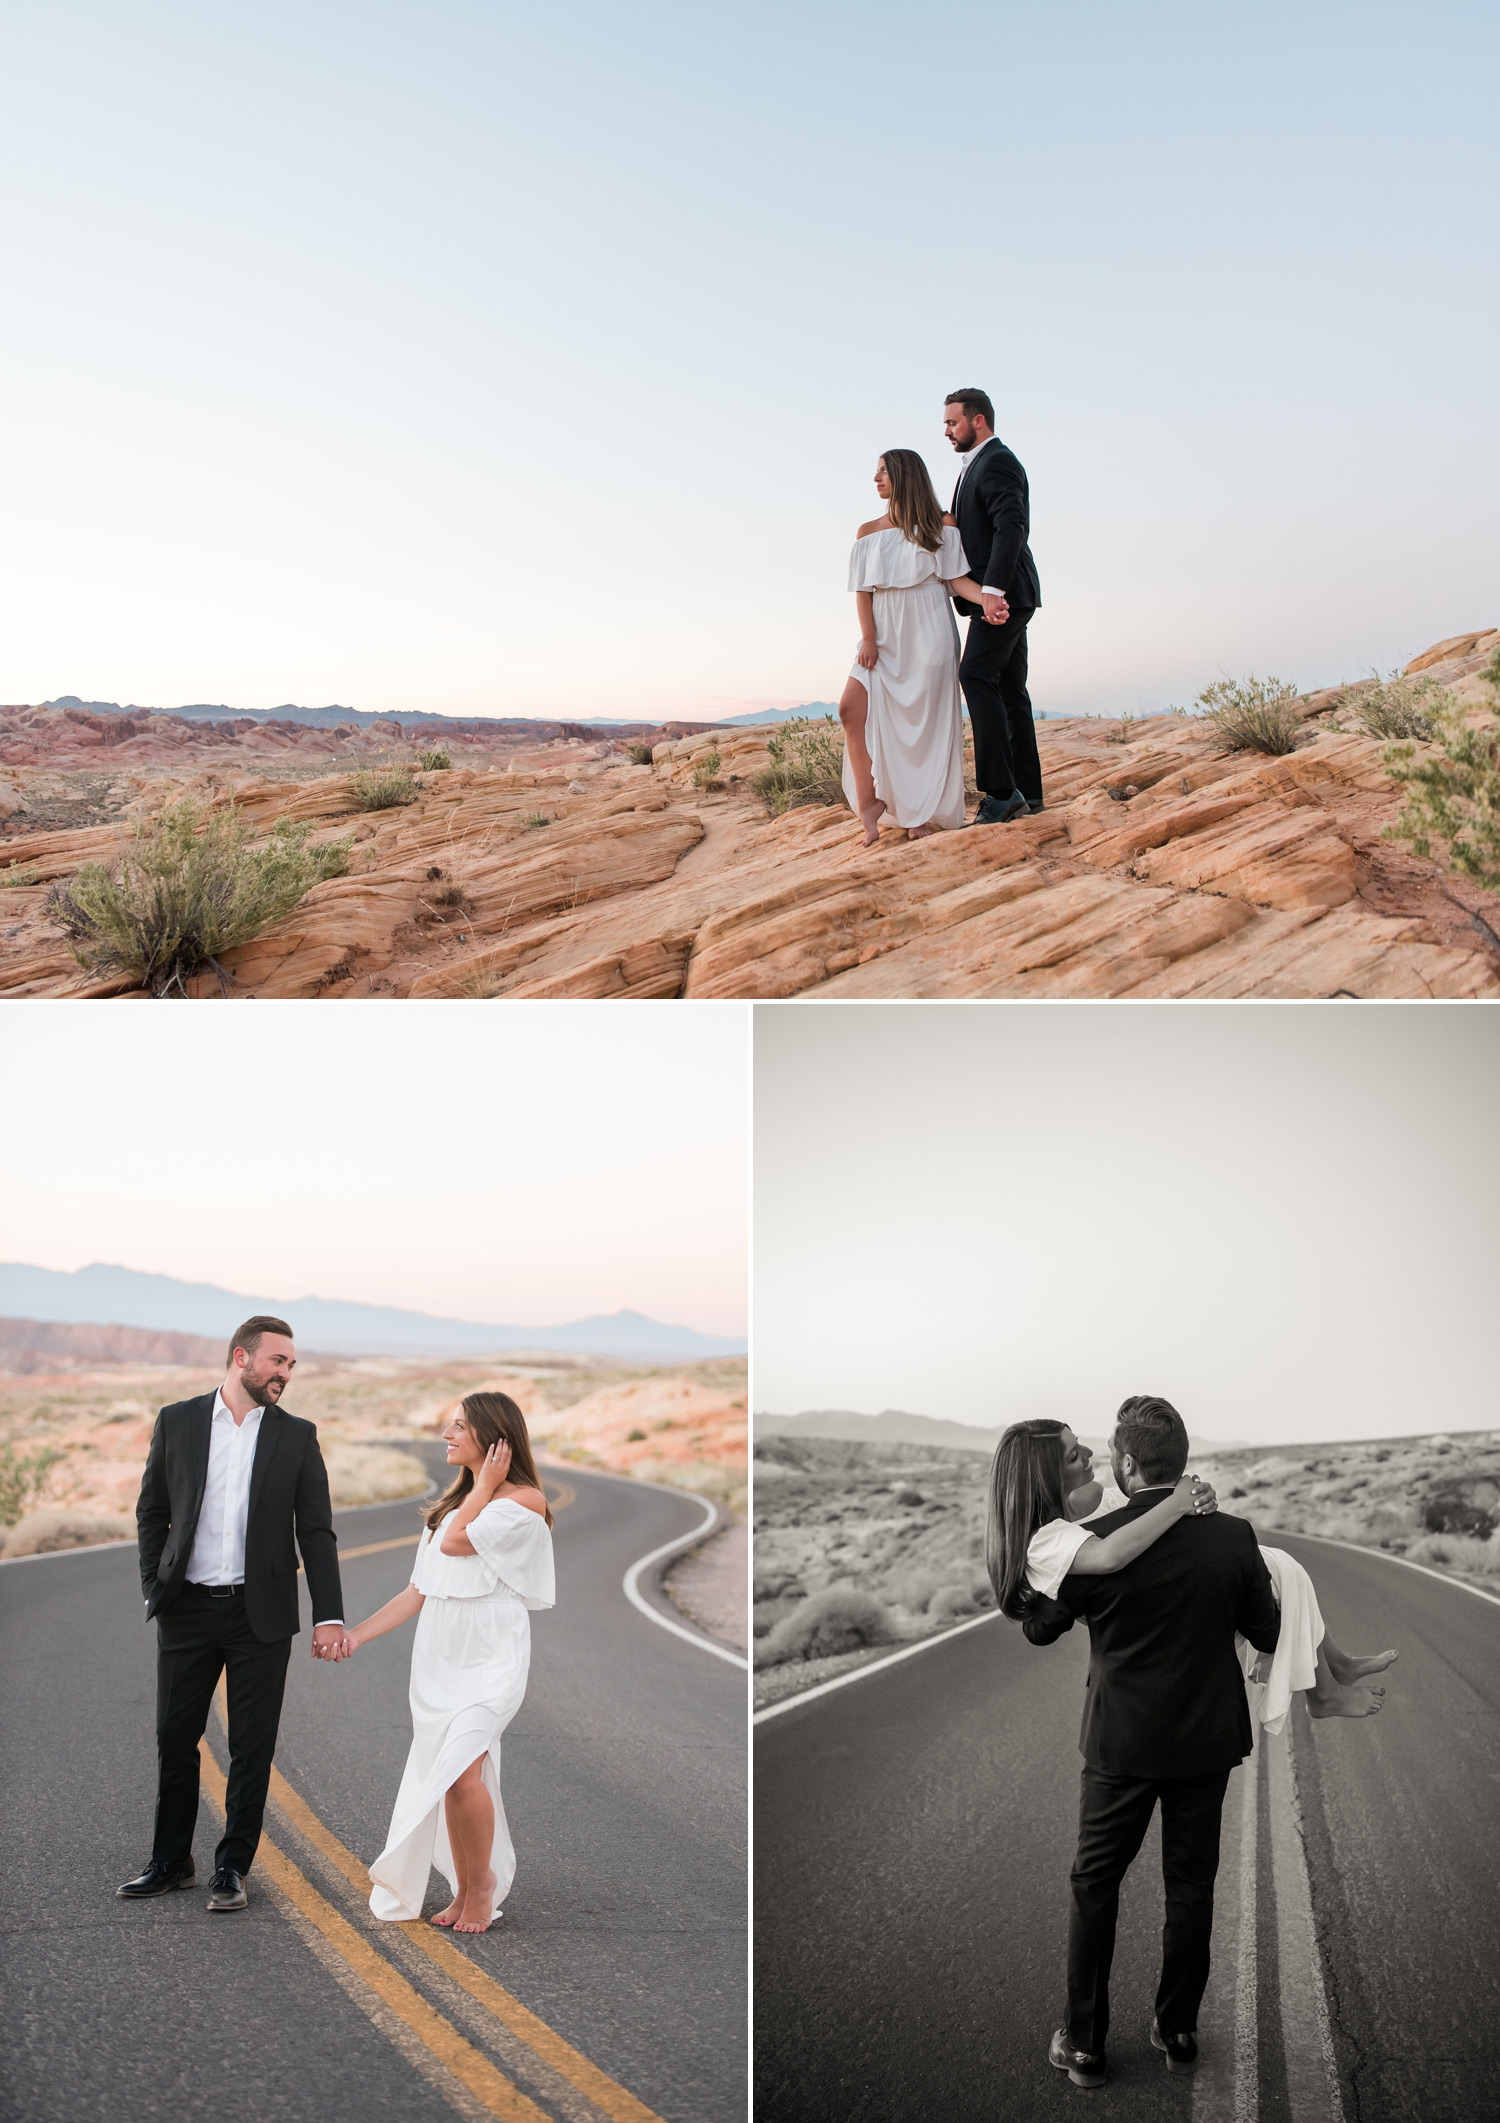 Valley of Fire Engagement Session | Kristen Marie Weddings + Portraits | Las Vegas Wedding Photographer